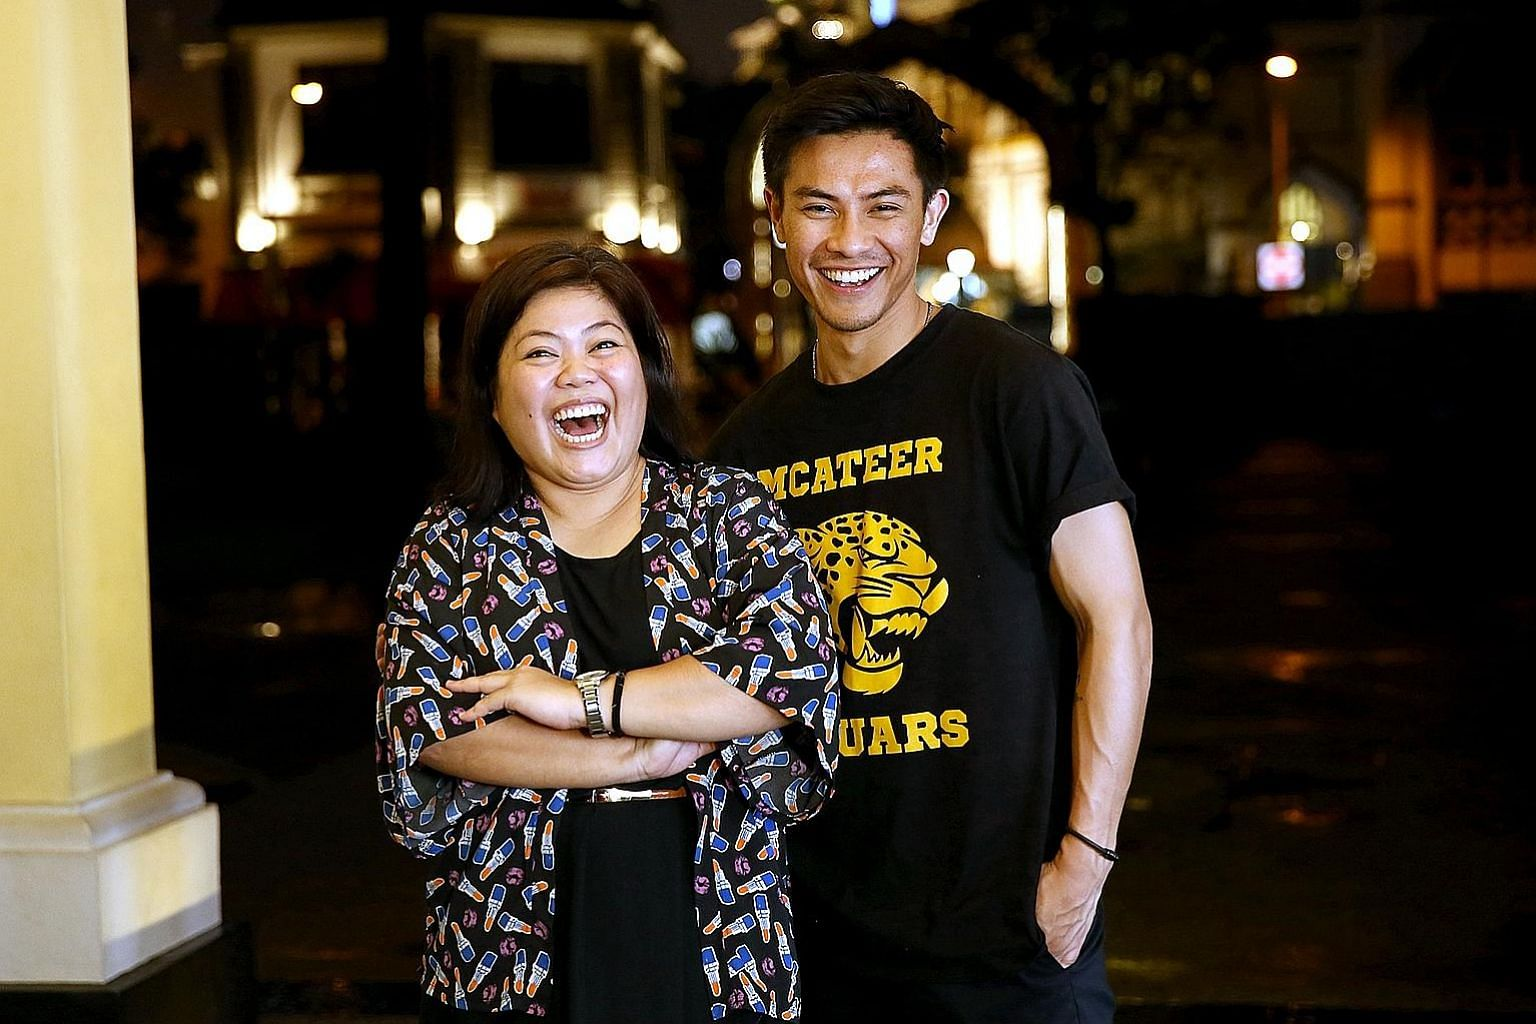 Dalifah Shahril was named Best Actress for her portrayal of a former comfort woman in Hayat Hayatie, staged by Teater Kami, while Thomas Pang took the title of Best Actor for playing a puppeteer in Hand To God, staged by the Singapore Repertory Theat